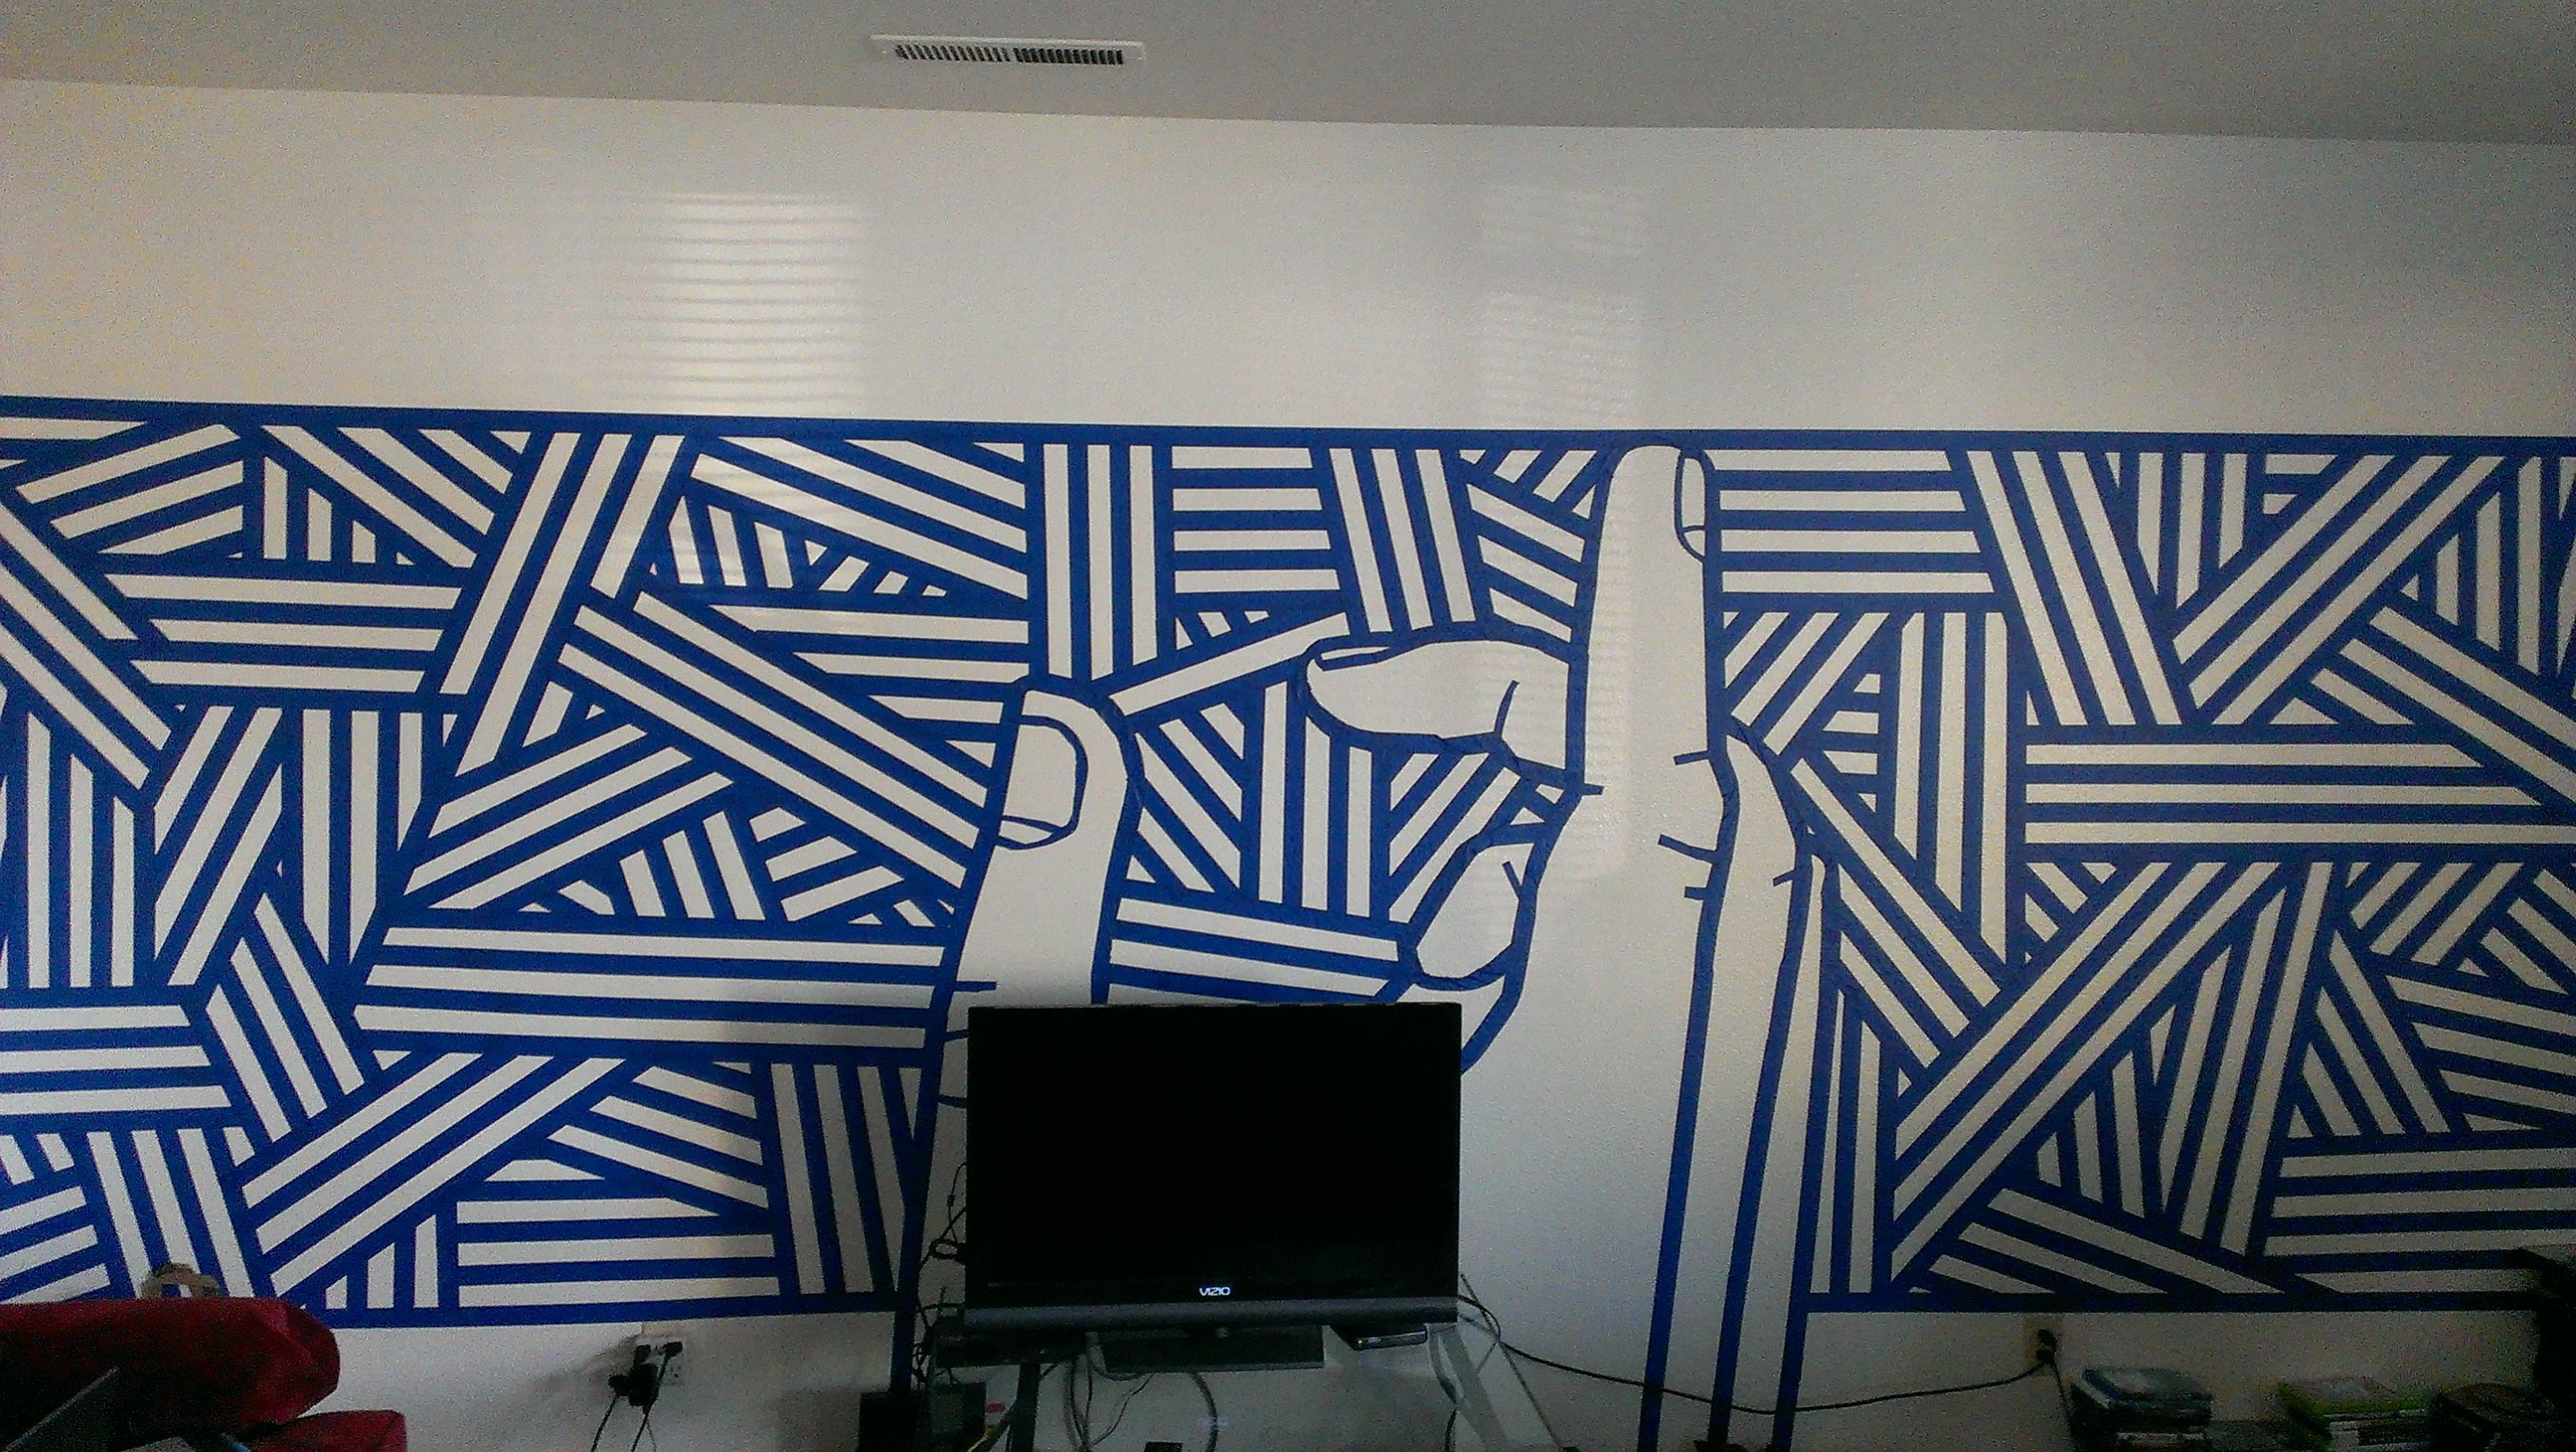 3 Rolls Of Blue Tape 6 Hours And Boredom And Now I Have A New